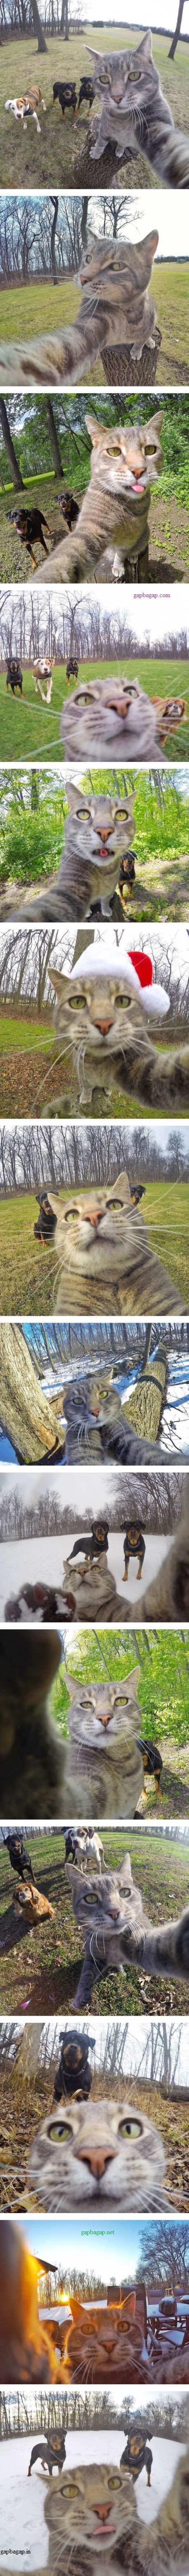 Funny Selfies Taking Cat Of The Day